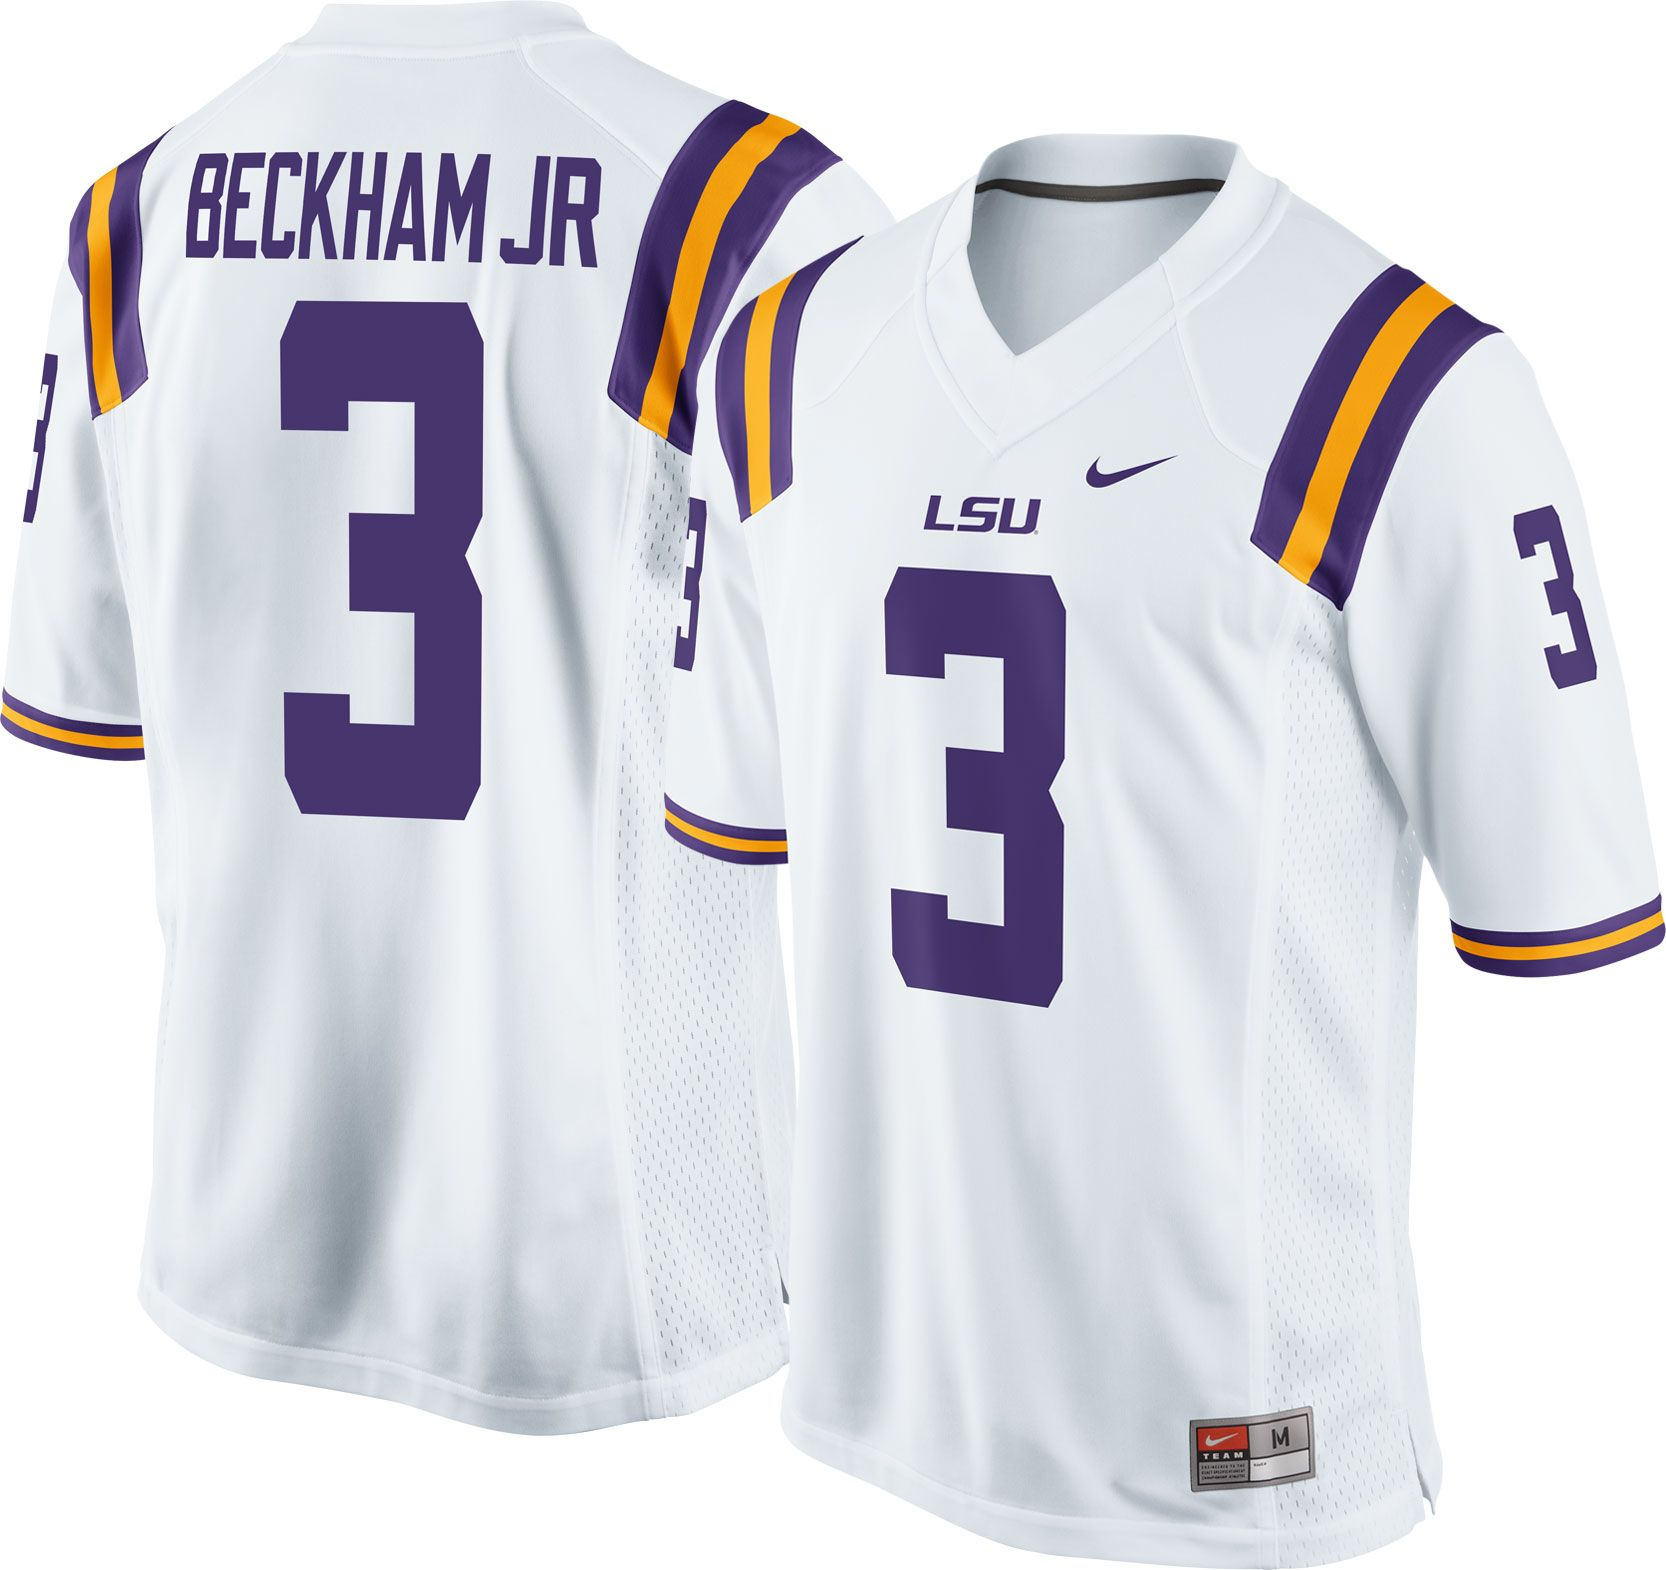 on sale bb9c0 495b2 mens lsu tigers 7 lefournette white 2015 college football ...